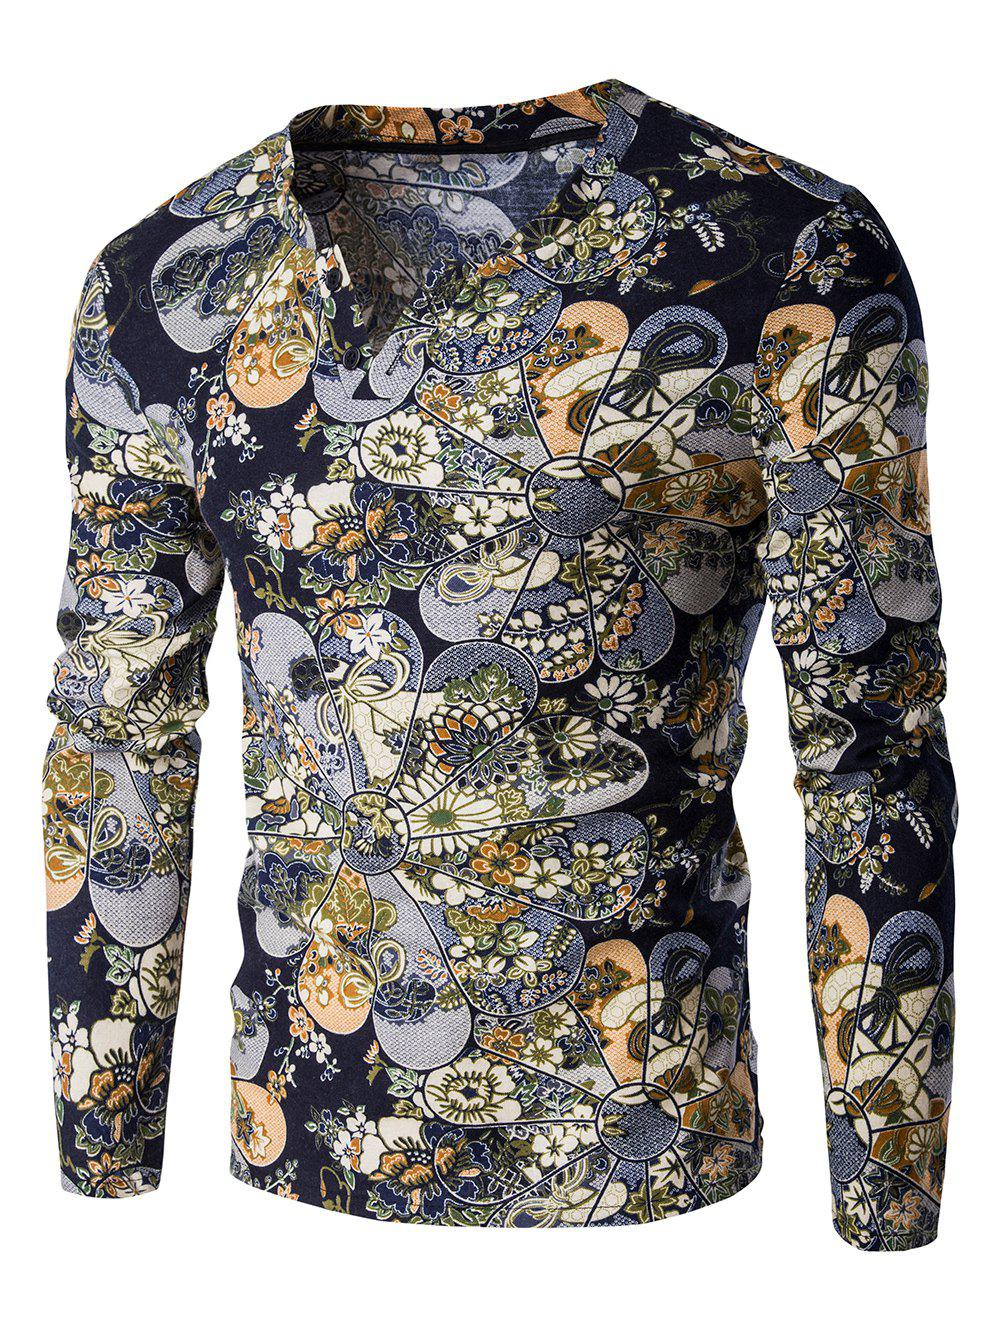 Abstract Ethnic Style Floral Pattern V-Neck Long Sleeve Men's T-Shirt - COLORMIX 2XL